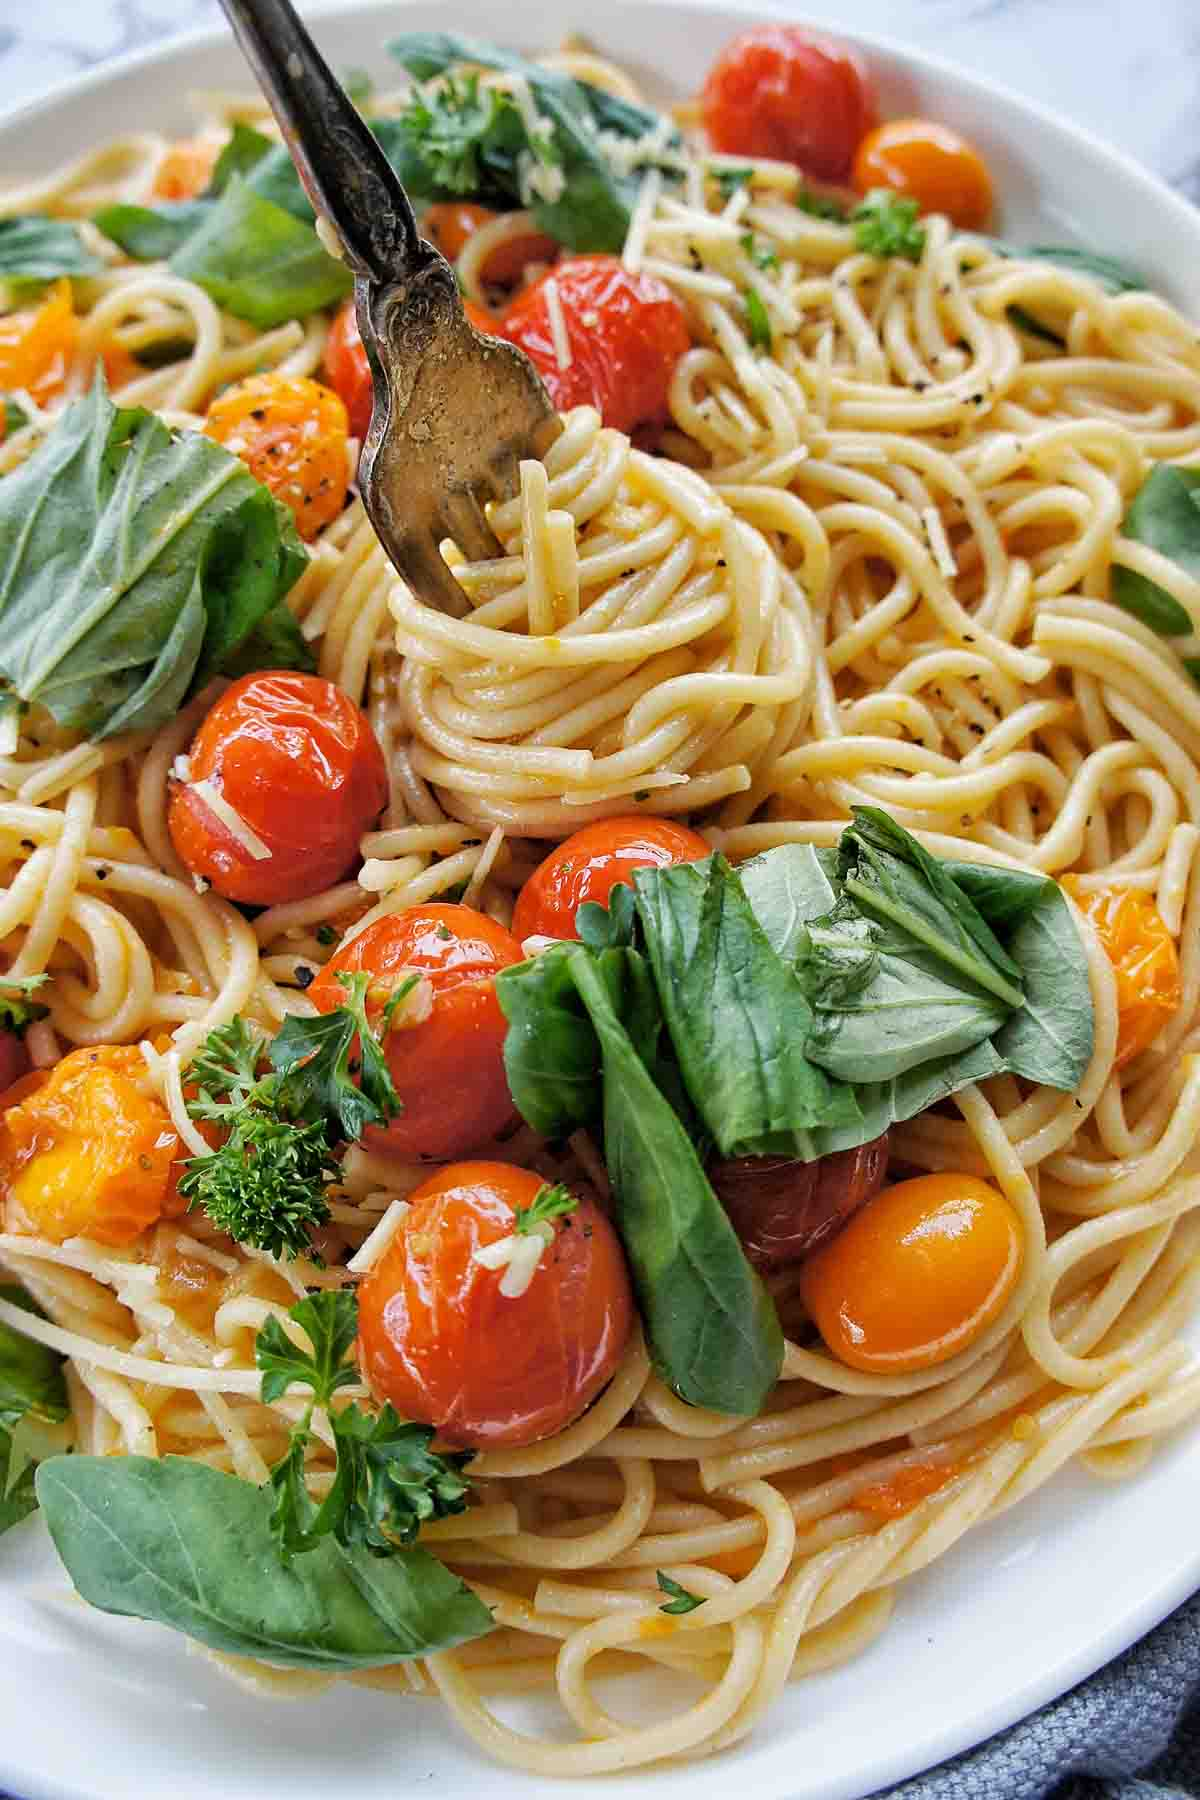 Fork with pasta twirled around it on a plate with cherry tomatoes and basil